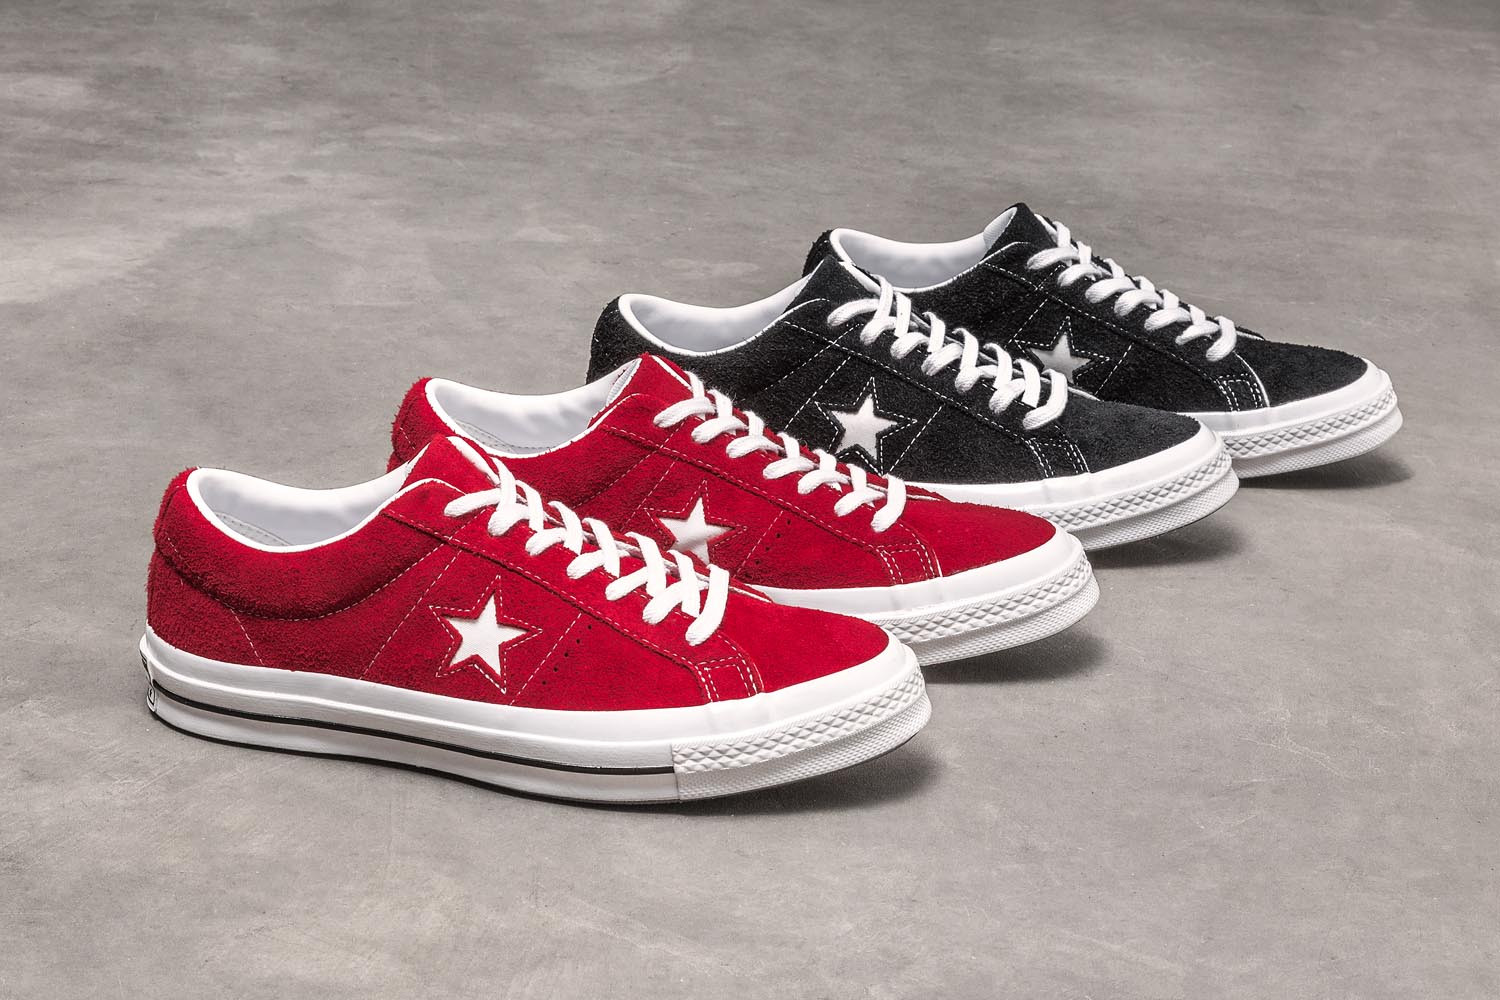 e1ad0d97cb7 The History Behind the Converse One Star